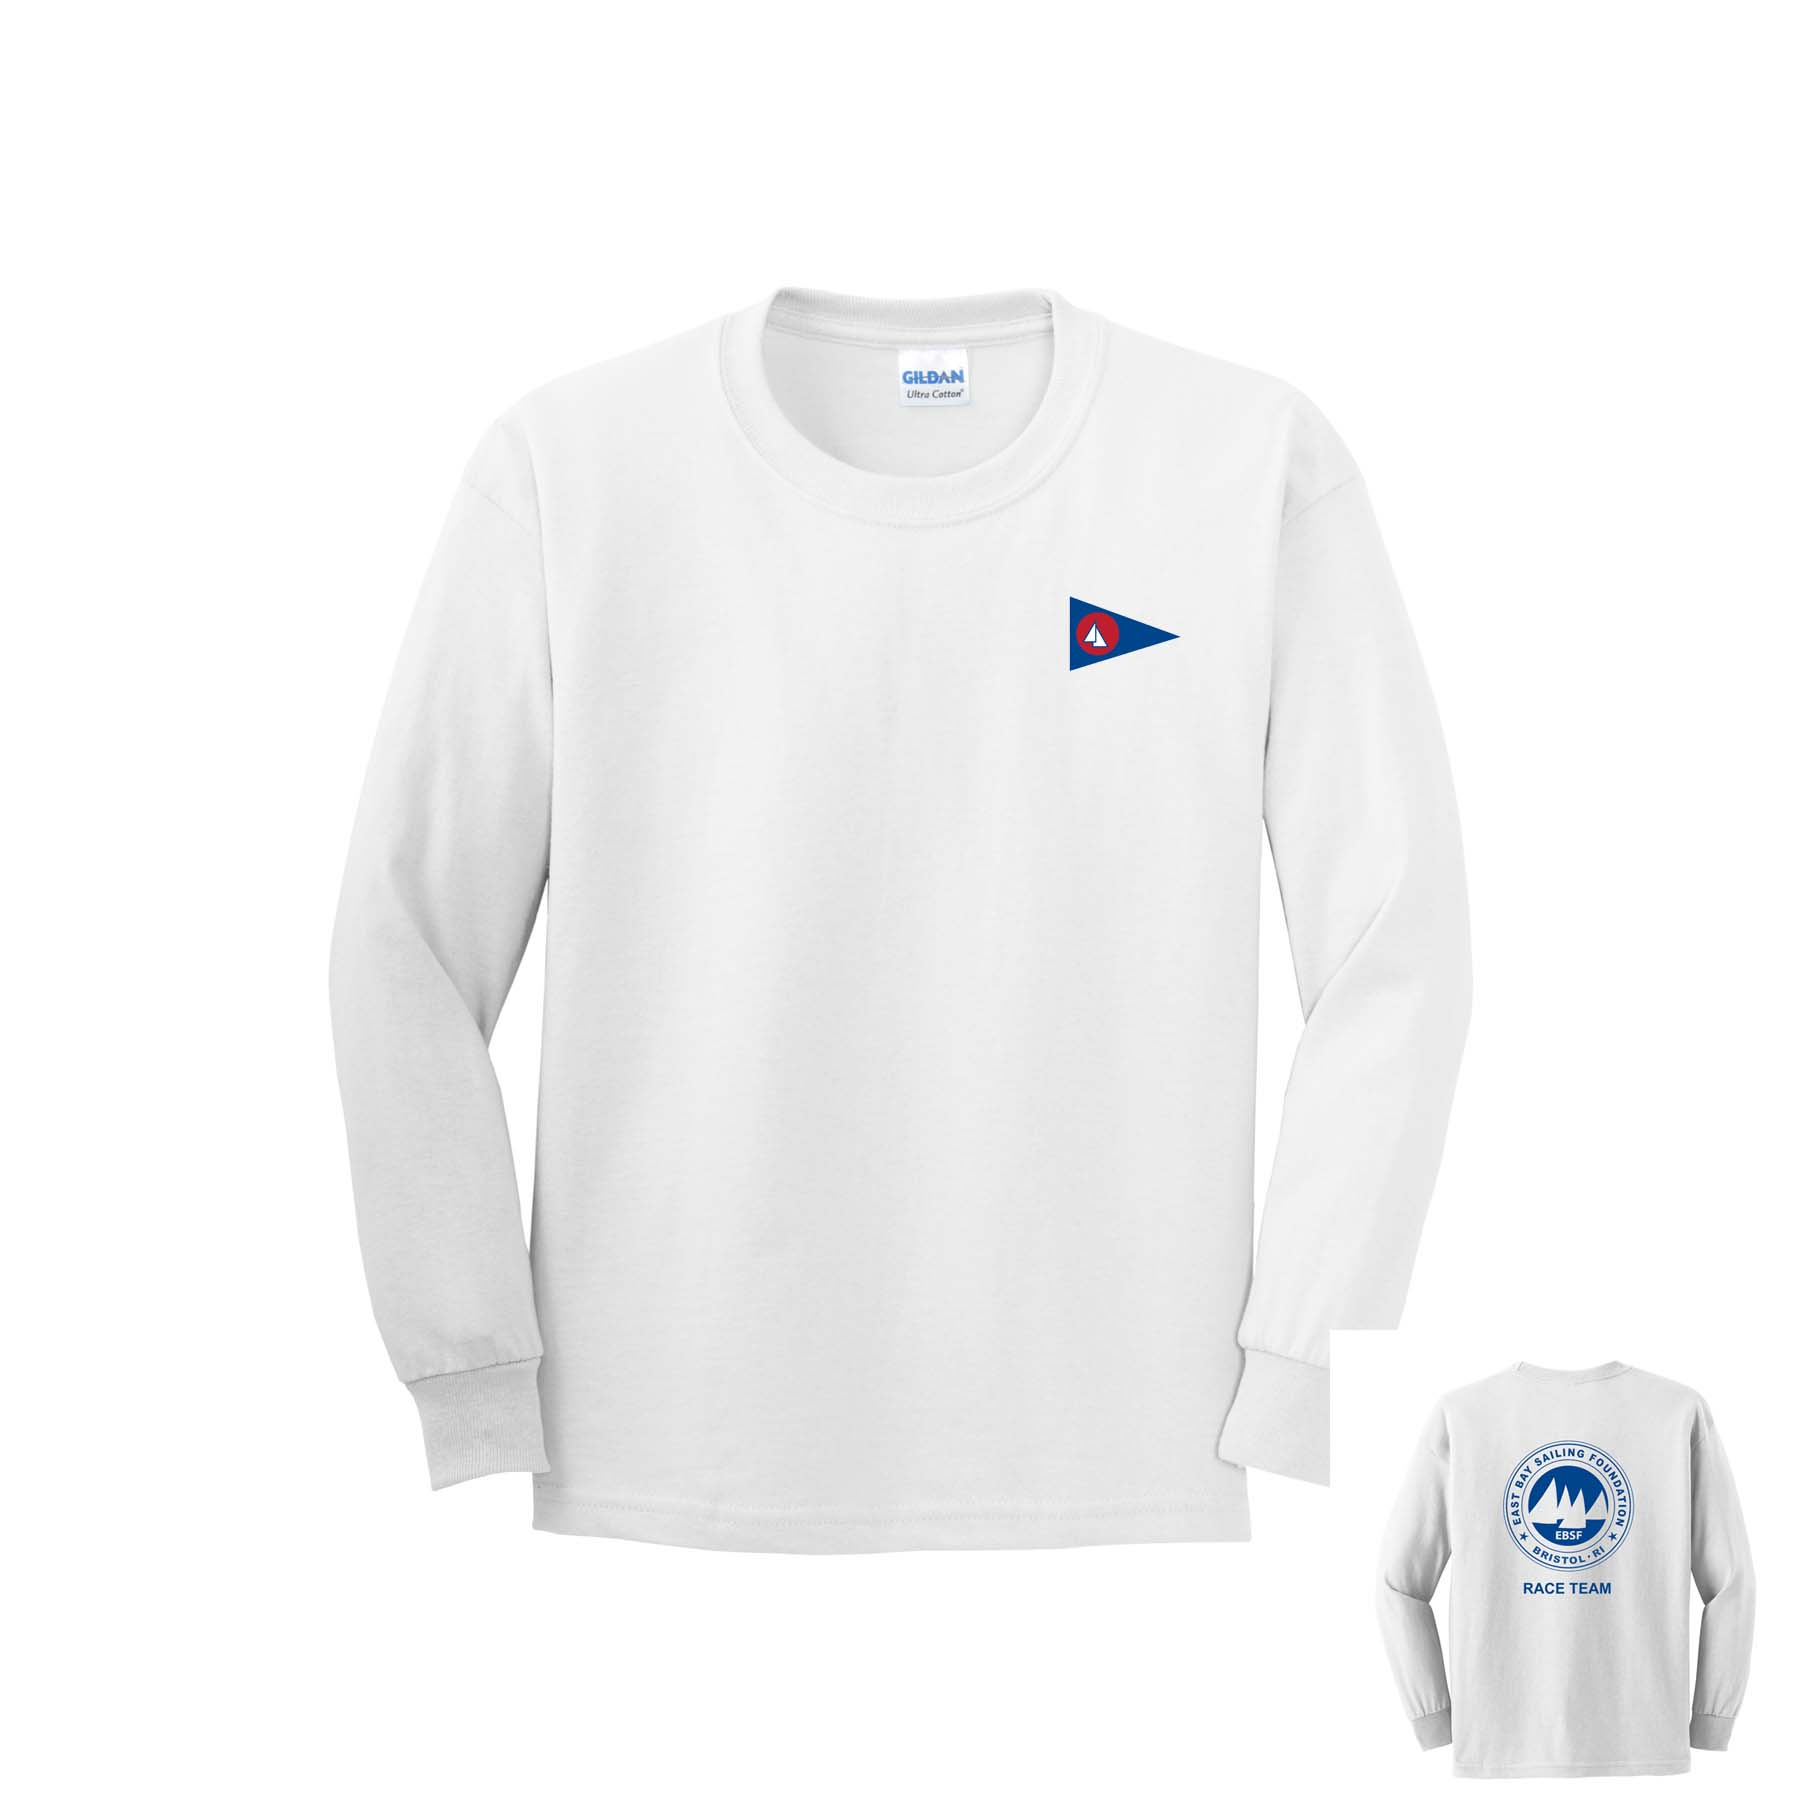 East Bay Sailing Foundation - Youth Race Team Long Sleeve Cotton Tee